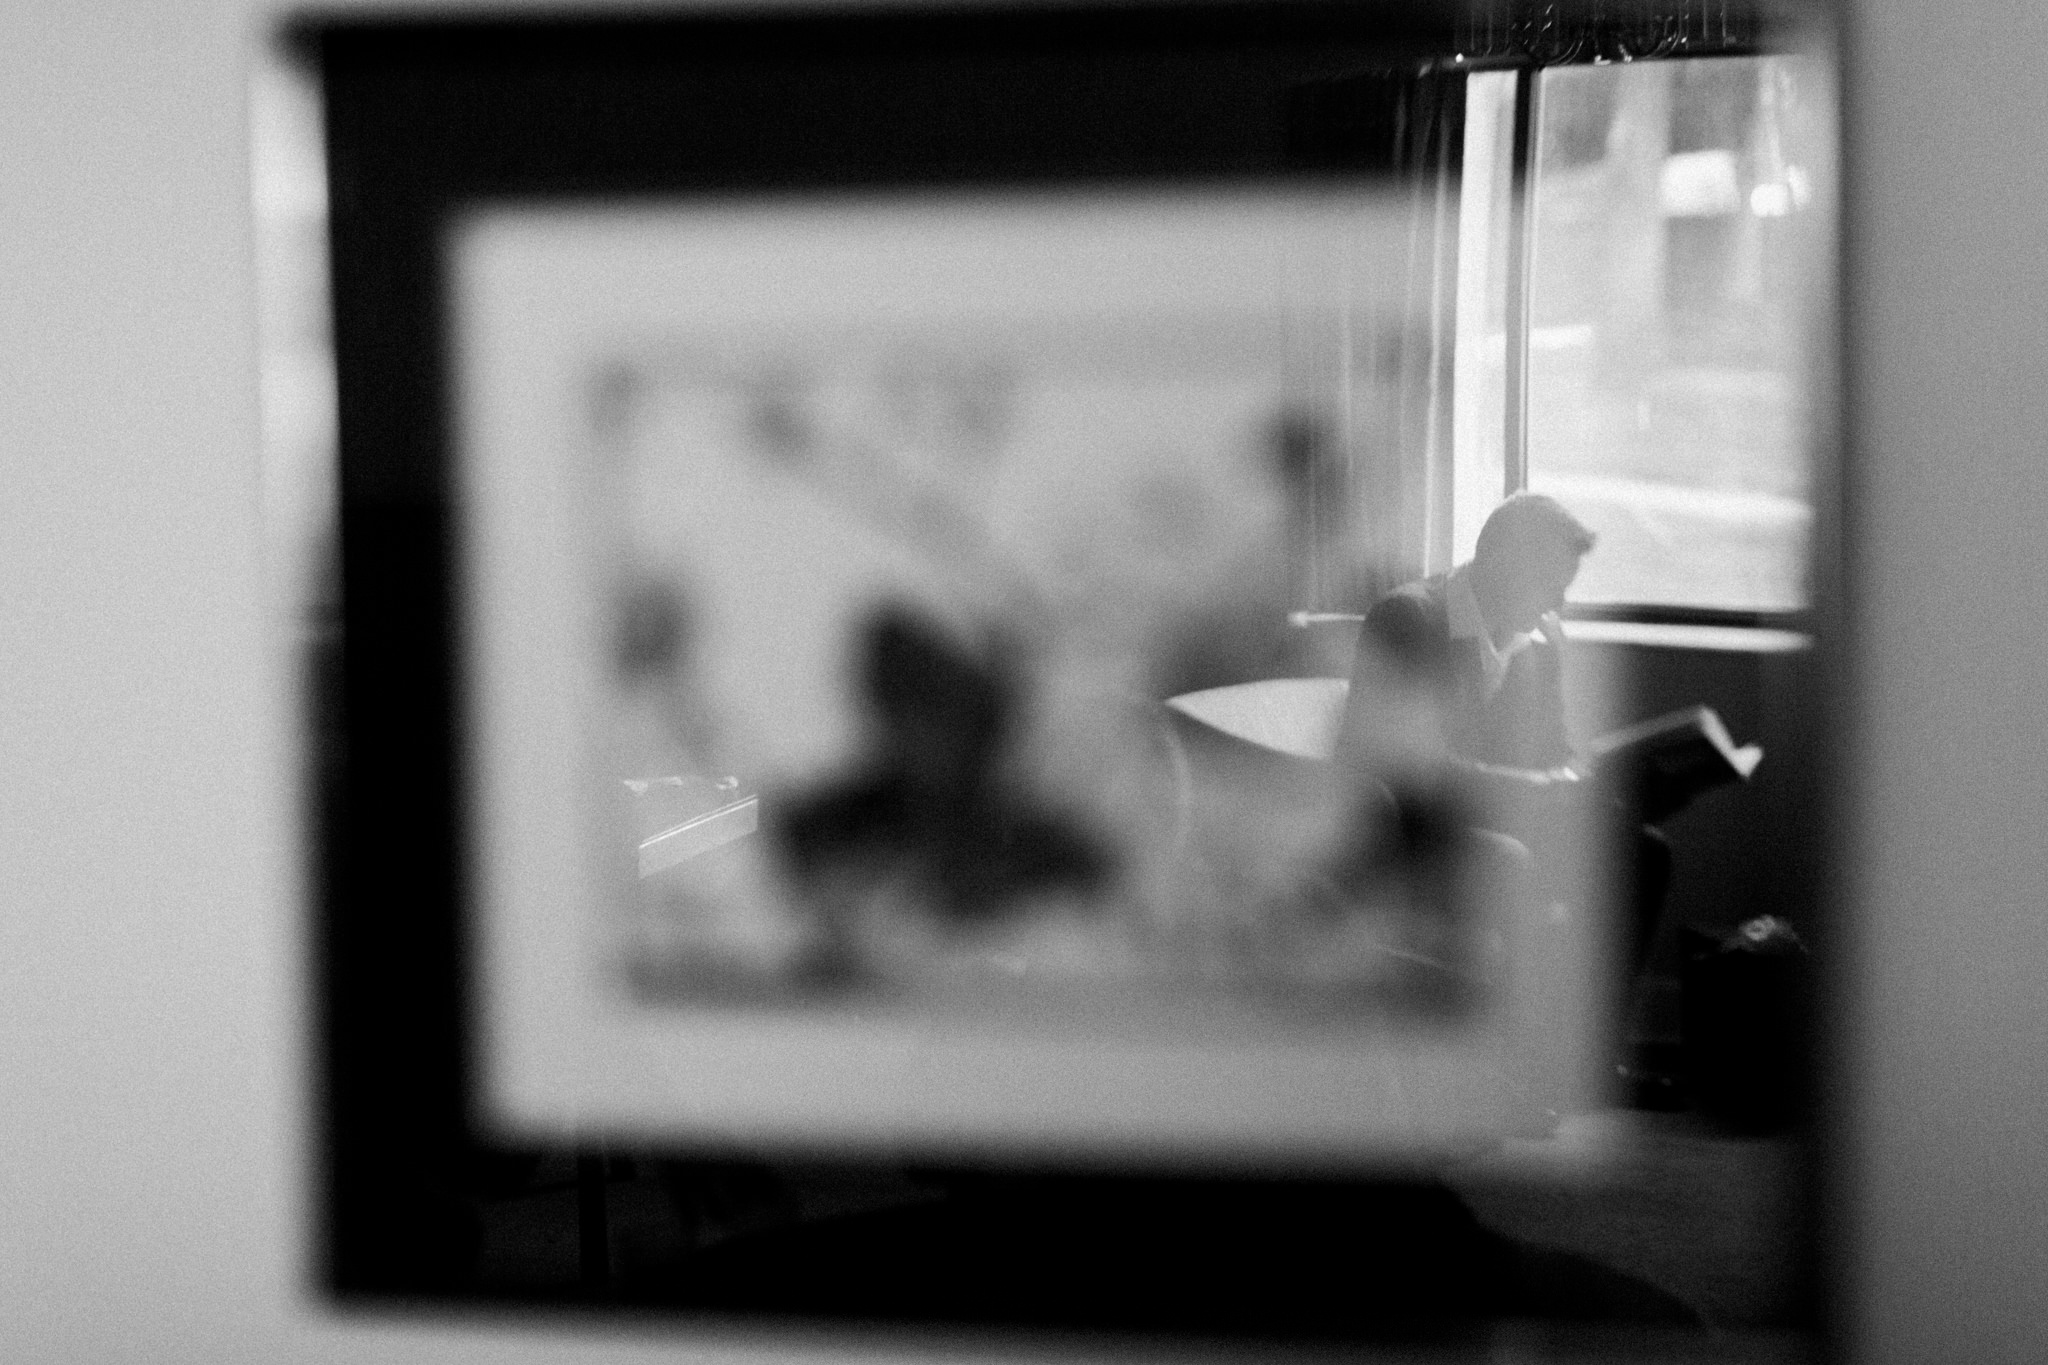 Reflection photo of groom reading his wedding gift from the bride. Reflection is in wall picture glass.